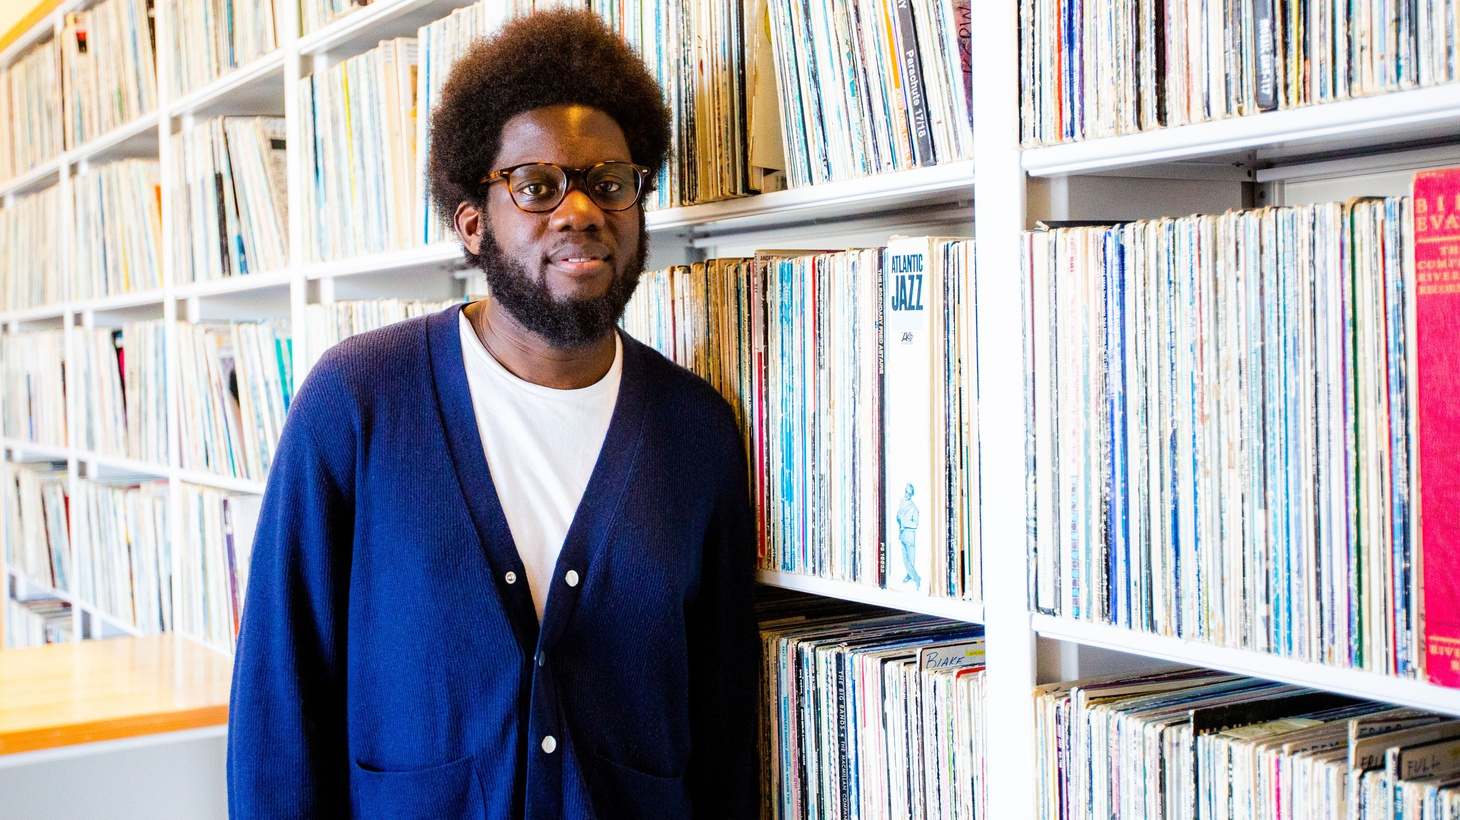 Michael Kiwanuka's third album is one of self-discovery and self- acceptance. He recently visited KCRW for a stripped down performance of new tracks from his latest album Kiwanuka.